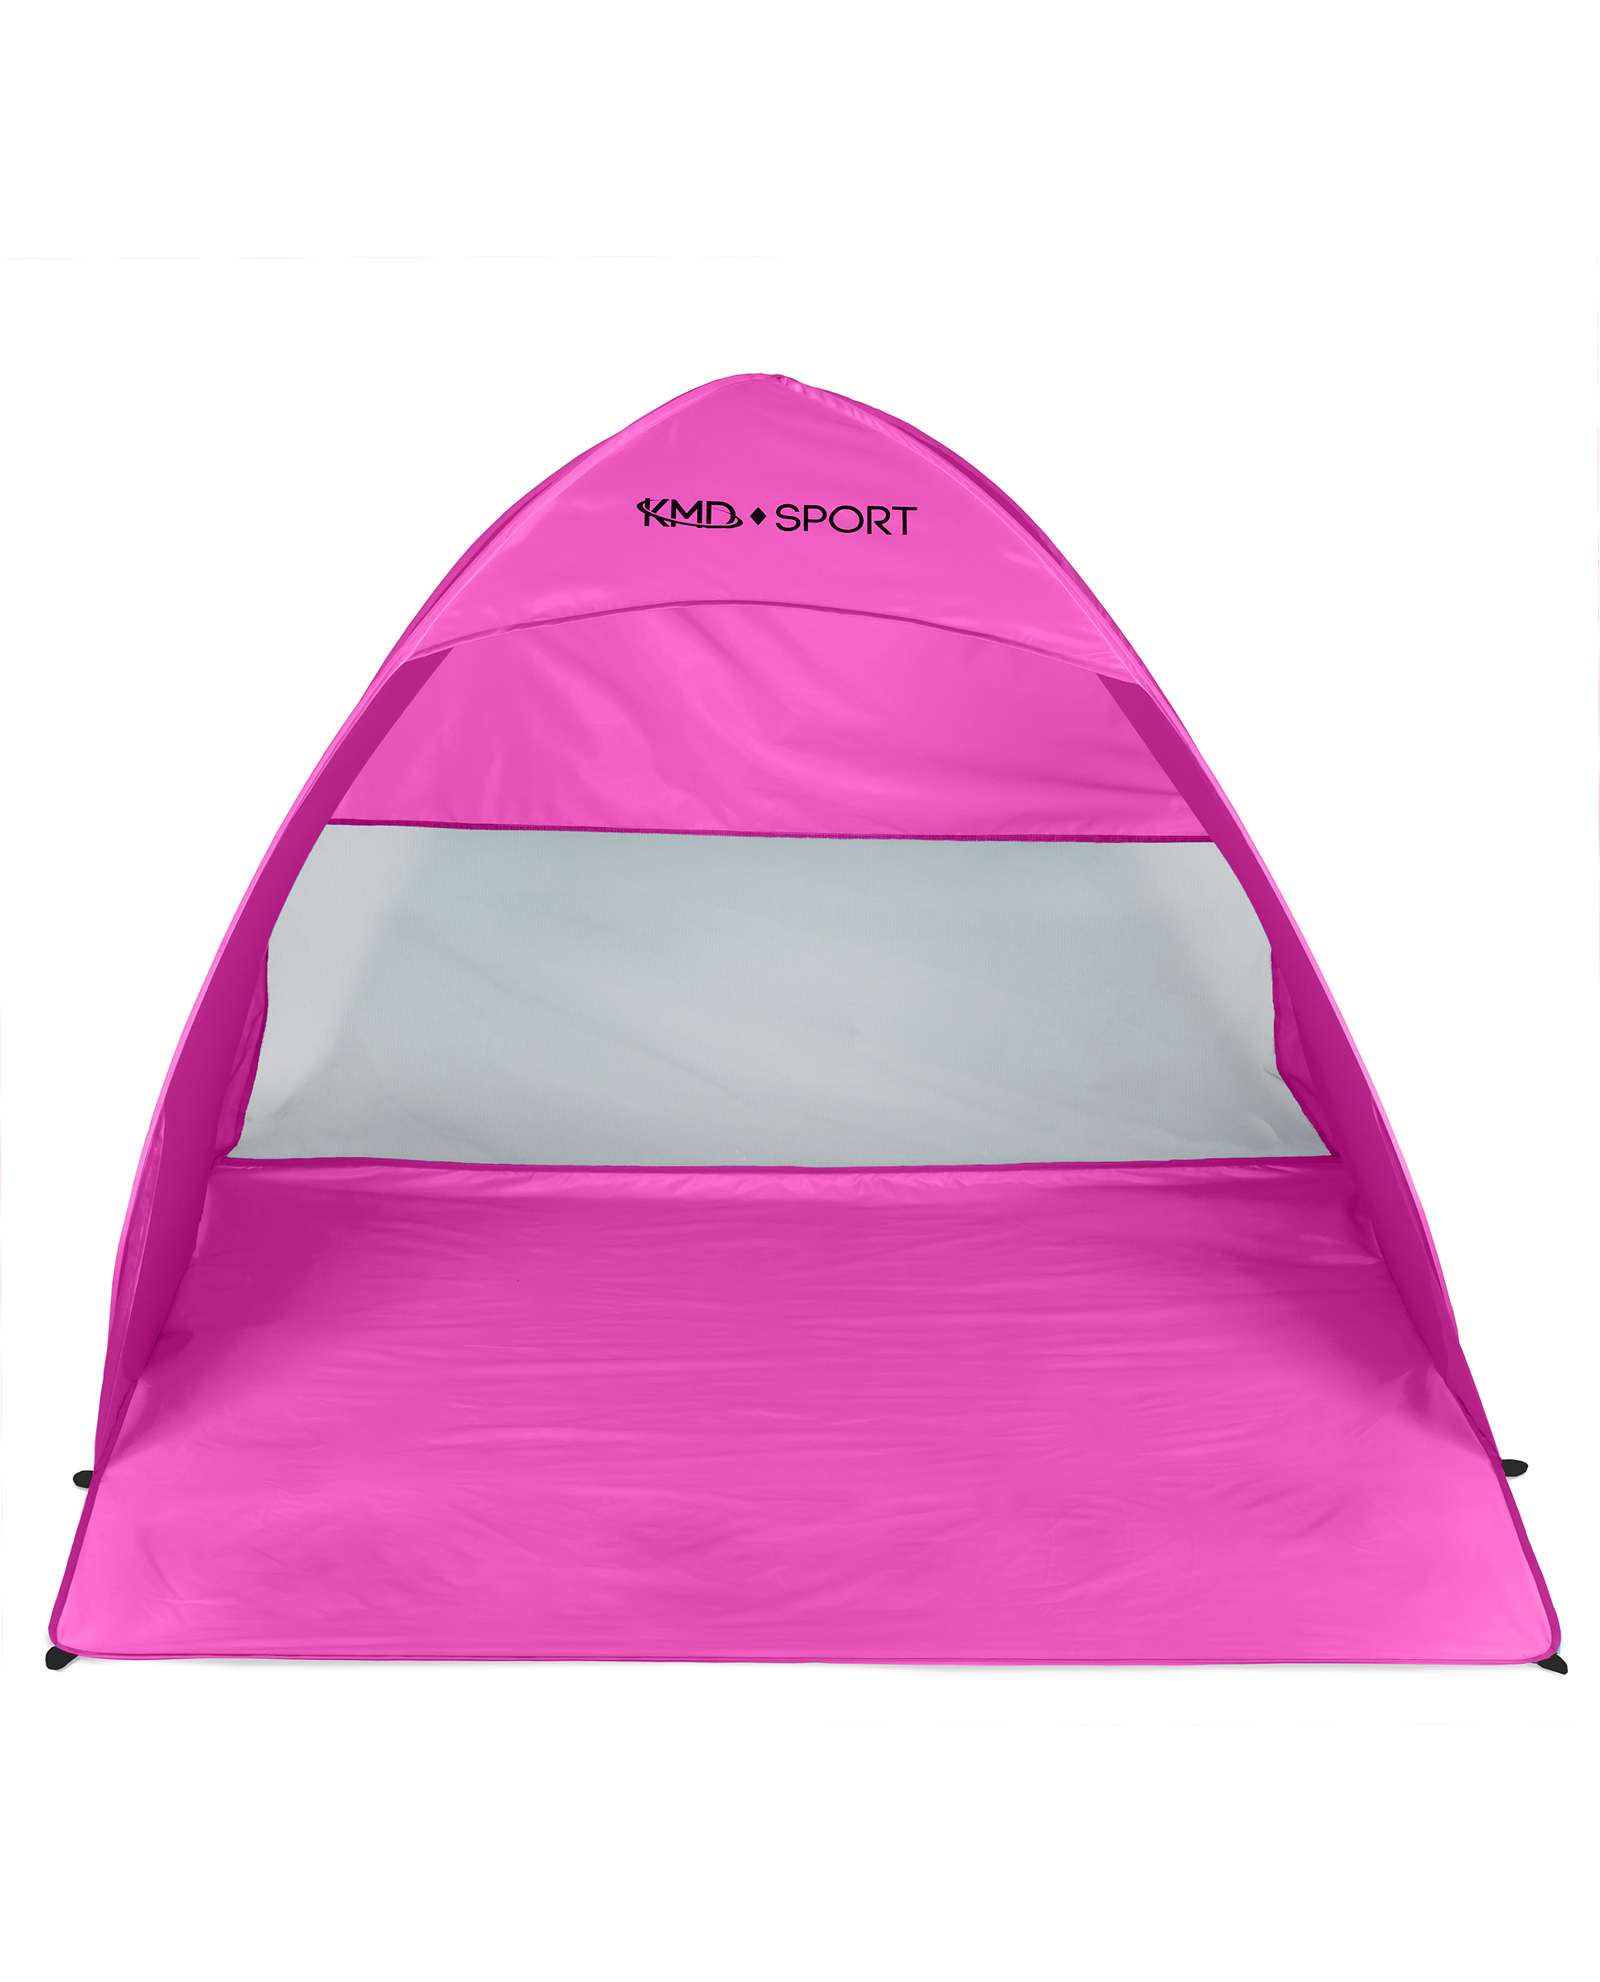 Beach Pop Up Tent u2013 Lightweight Portable Cabana for Privacy u0026 Shade u2013 Great for Kids Adults Family u2013 Quick Set Up Provides Shelter from the Sun ...  sc 1 st  KMD Direct & Beach Pop Up Tent u2013 Lightweight Portable Cabana for Privacy ...